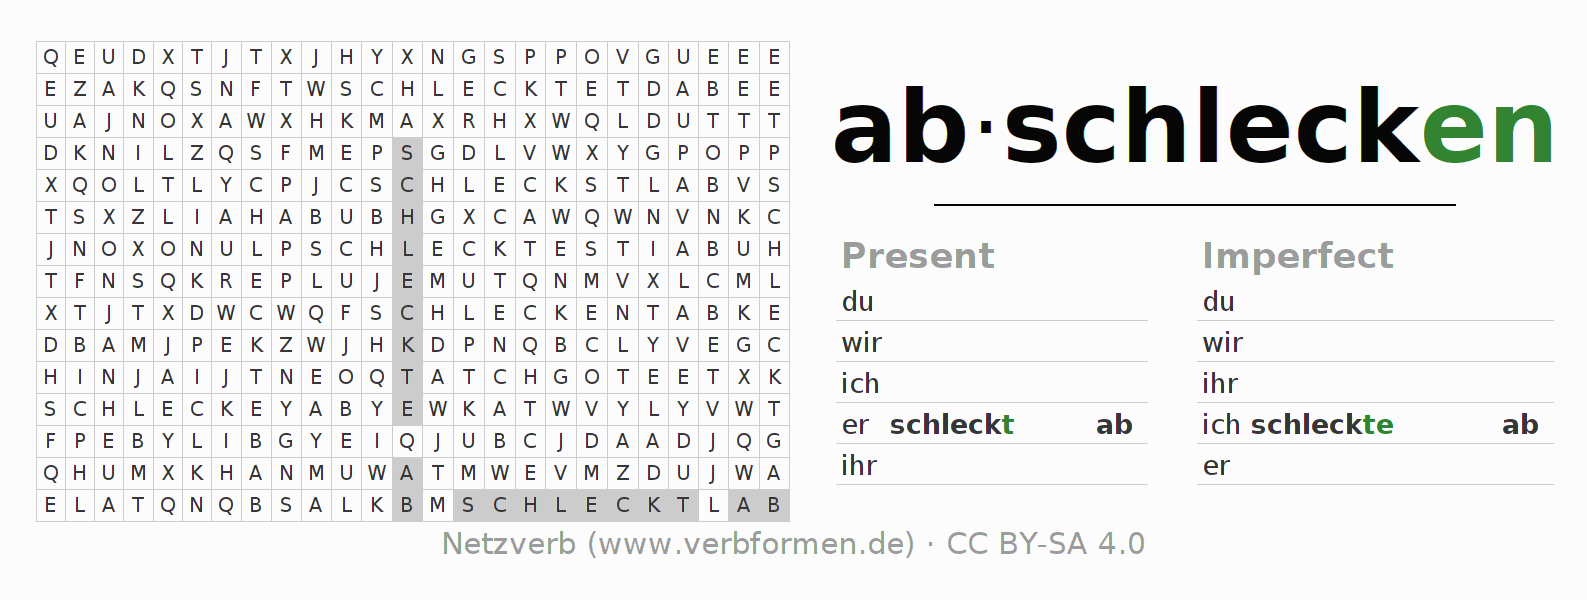 Word search puzzle for the conjugation of the verb abschlecken